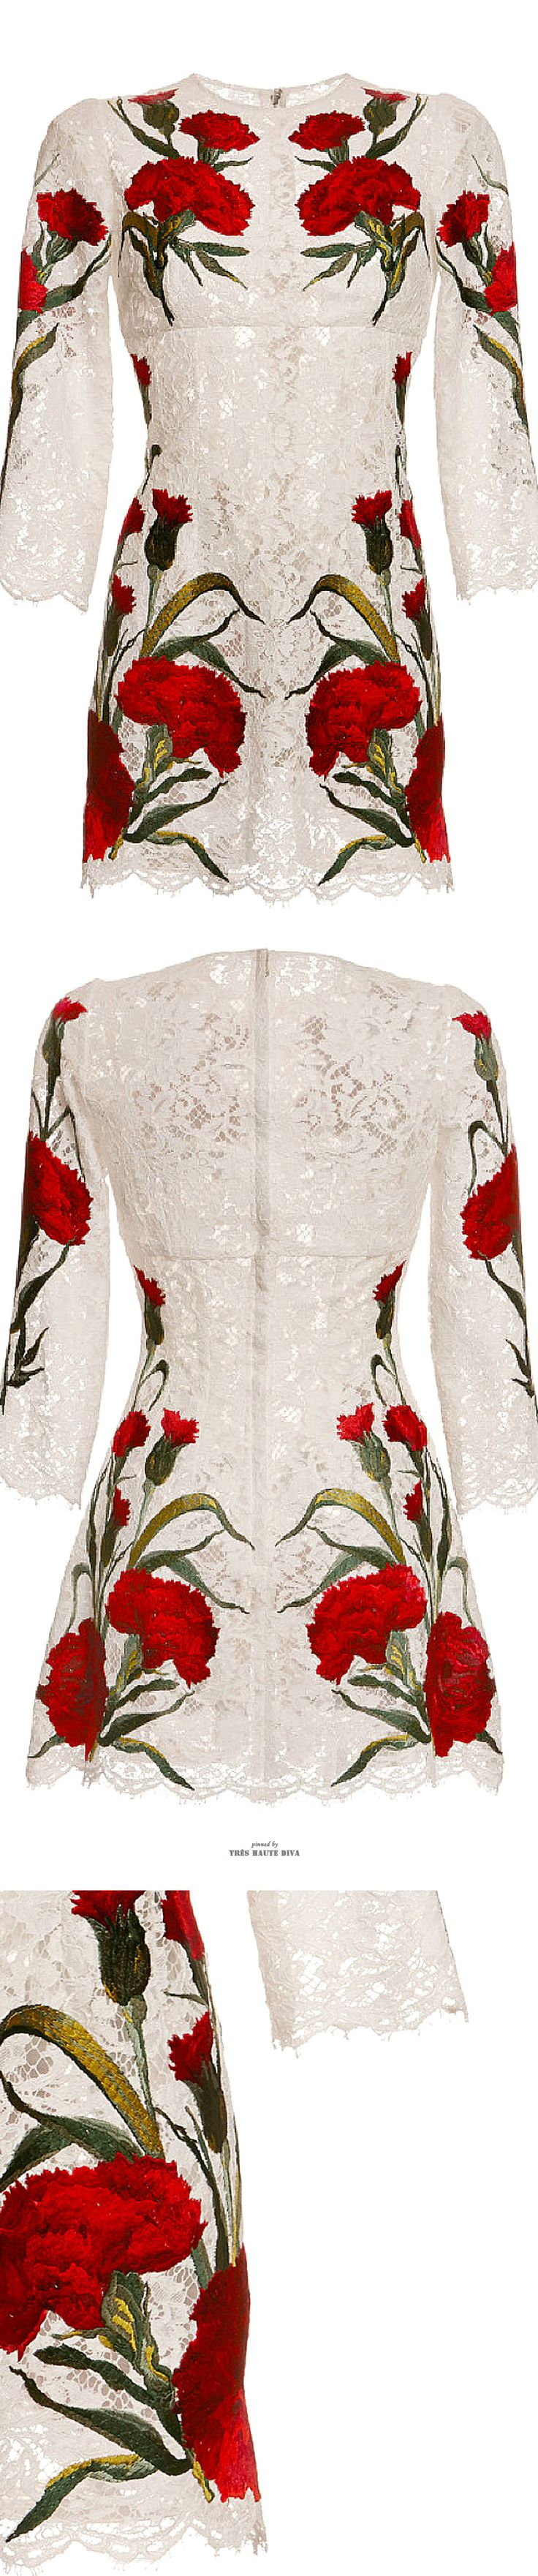 Dolce & Gabbana White Lace Dress With Embroidered Carnations SS 2015